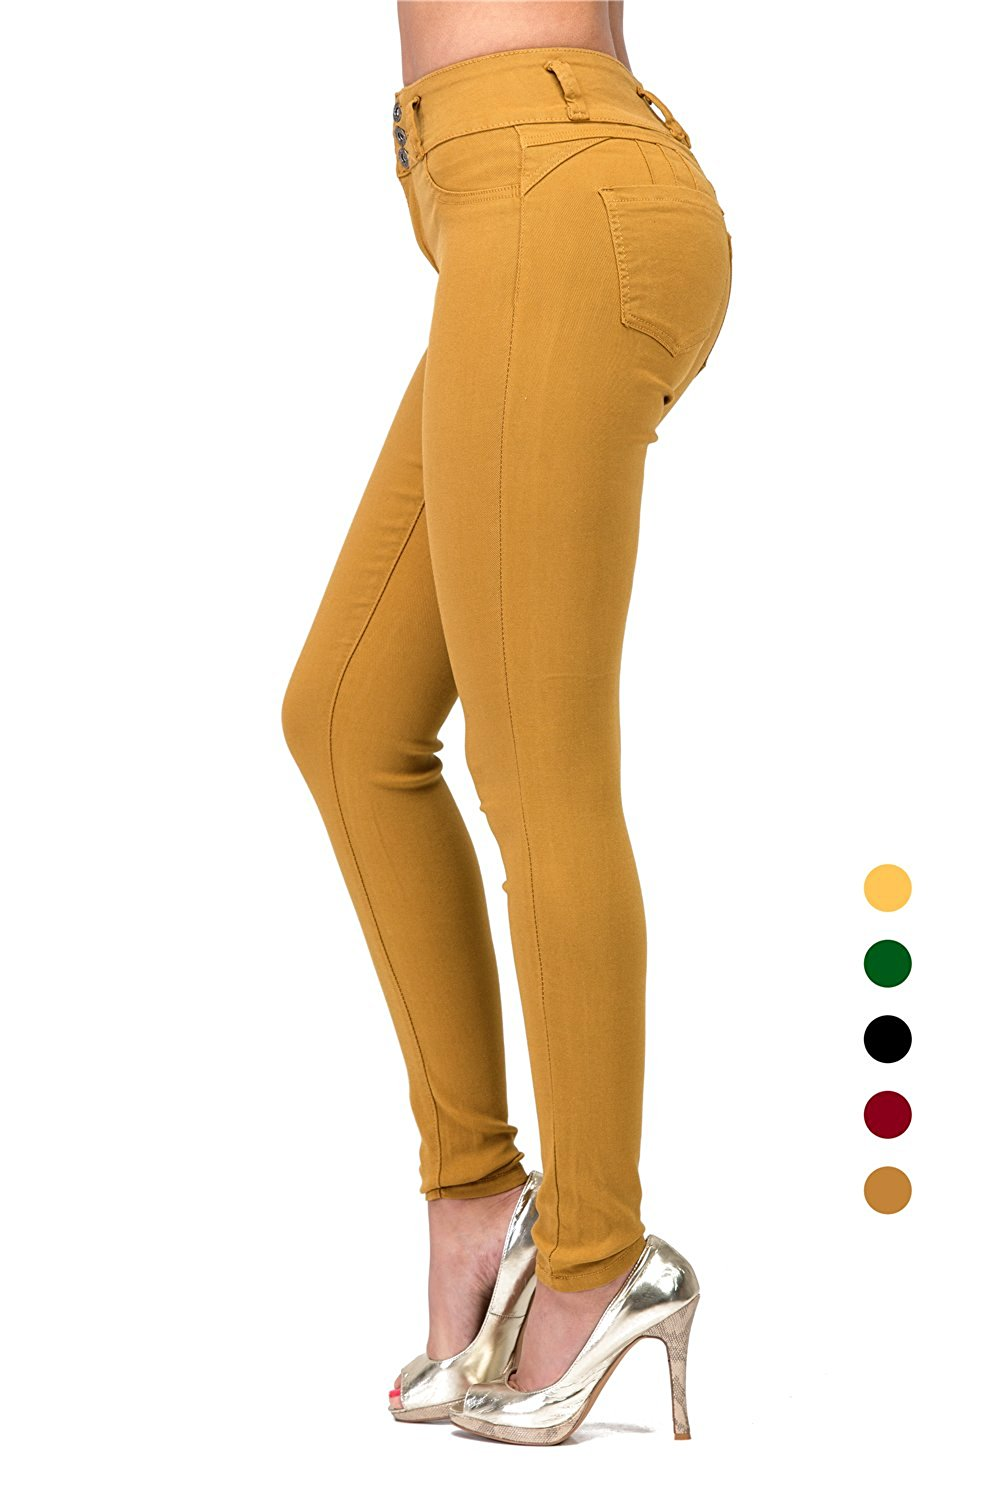 16a9cc5ee8e L.B FASHION High Waisted Jeans Skinny Stretch Colored Pencil Pants Butt Lift  for Juniors Teen Grils